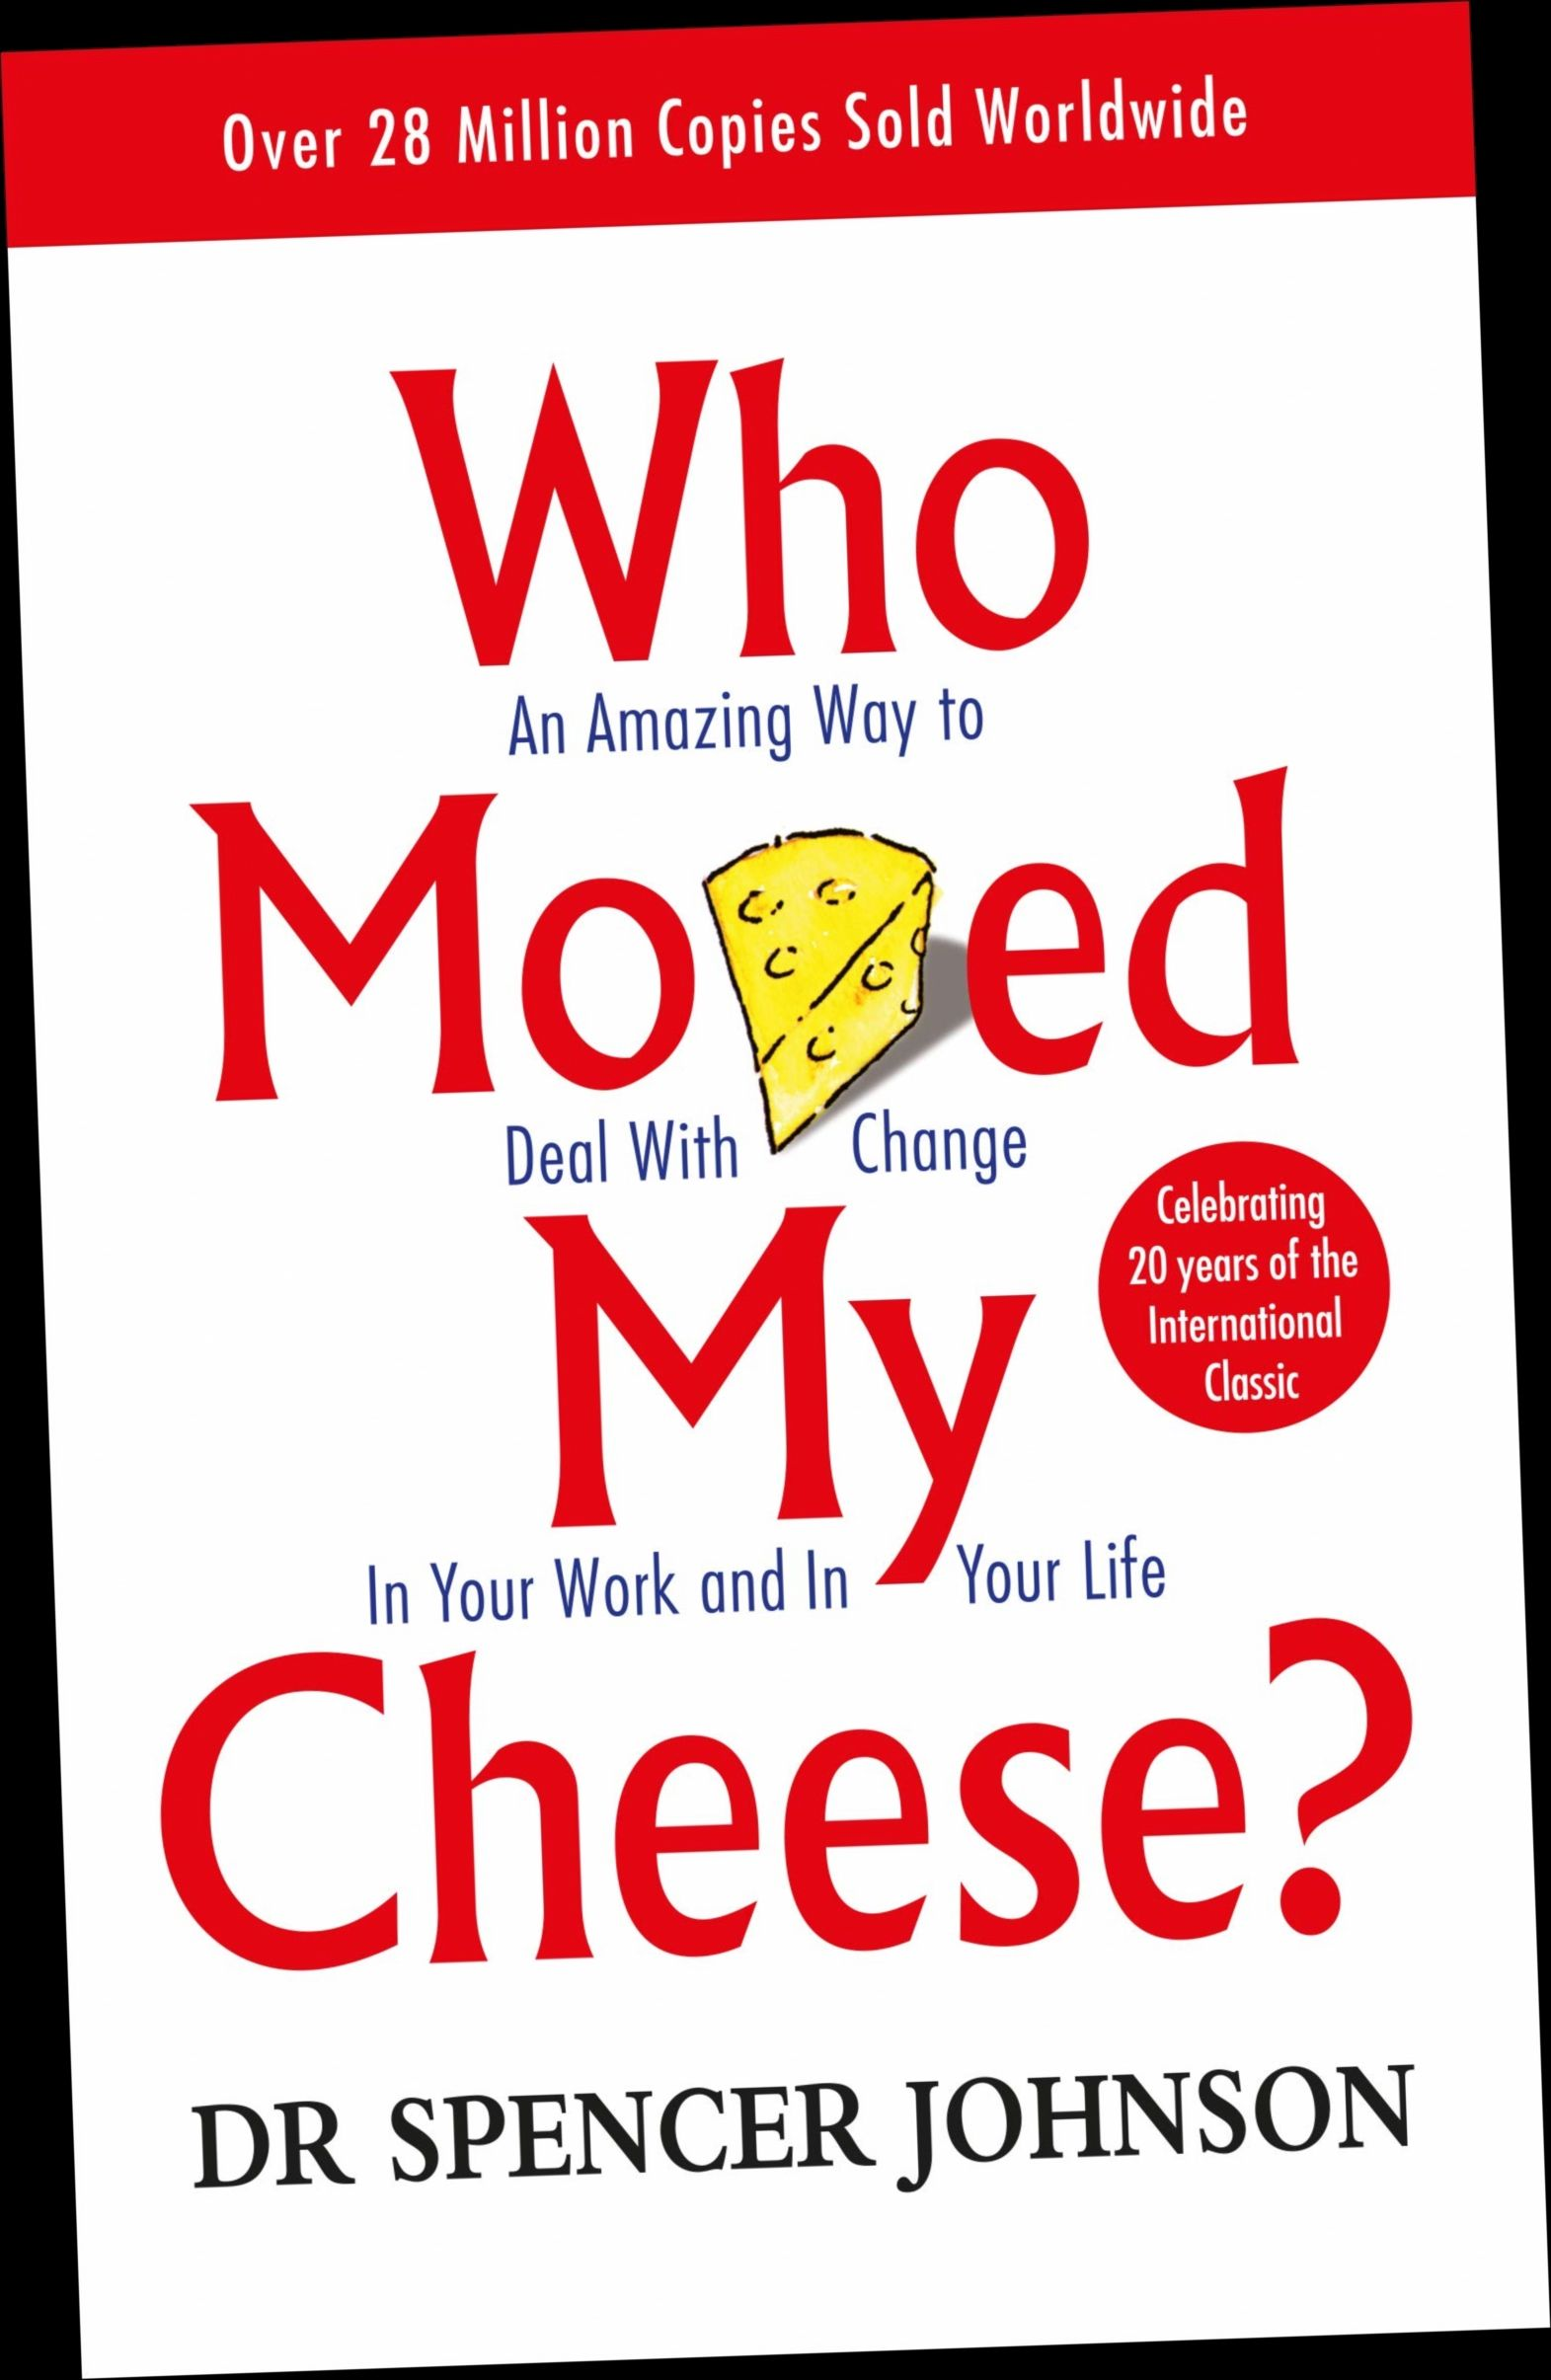 Ebook Pdf Epub Download Who Moved My Cheese An Amazing Way To Deal With Change In Your Work And Book Summaries Self Development Books English Book